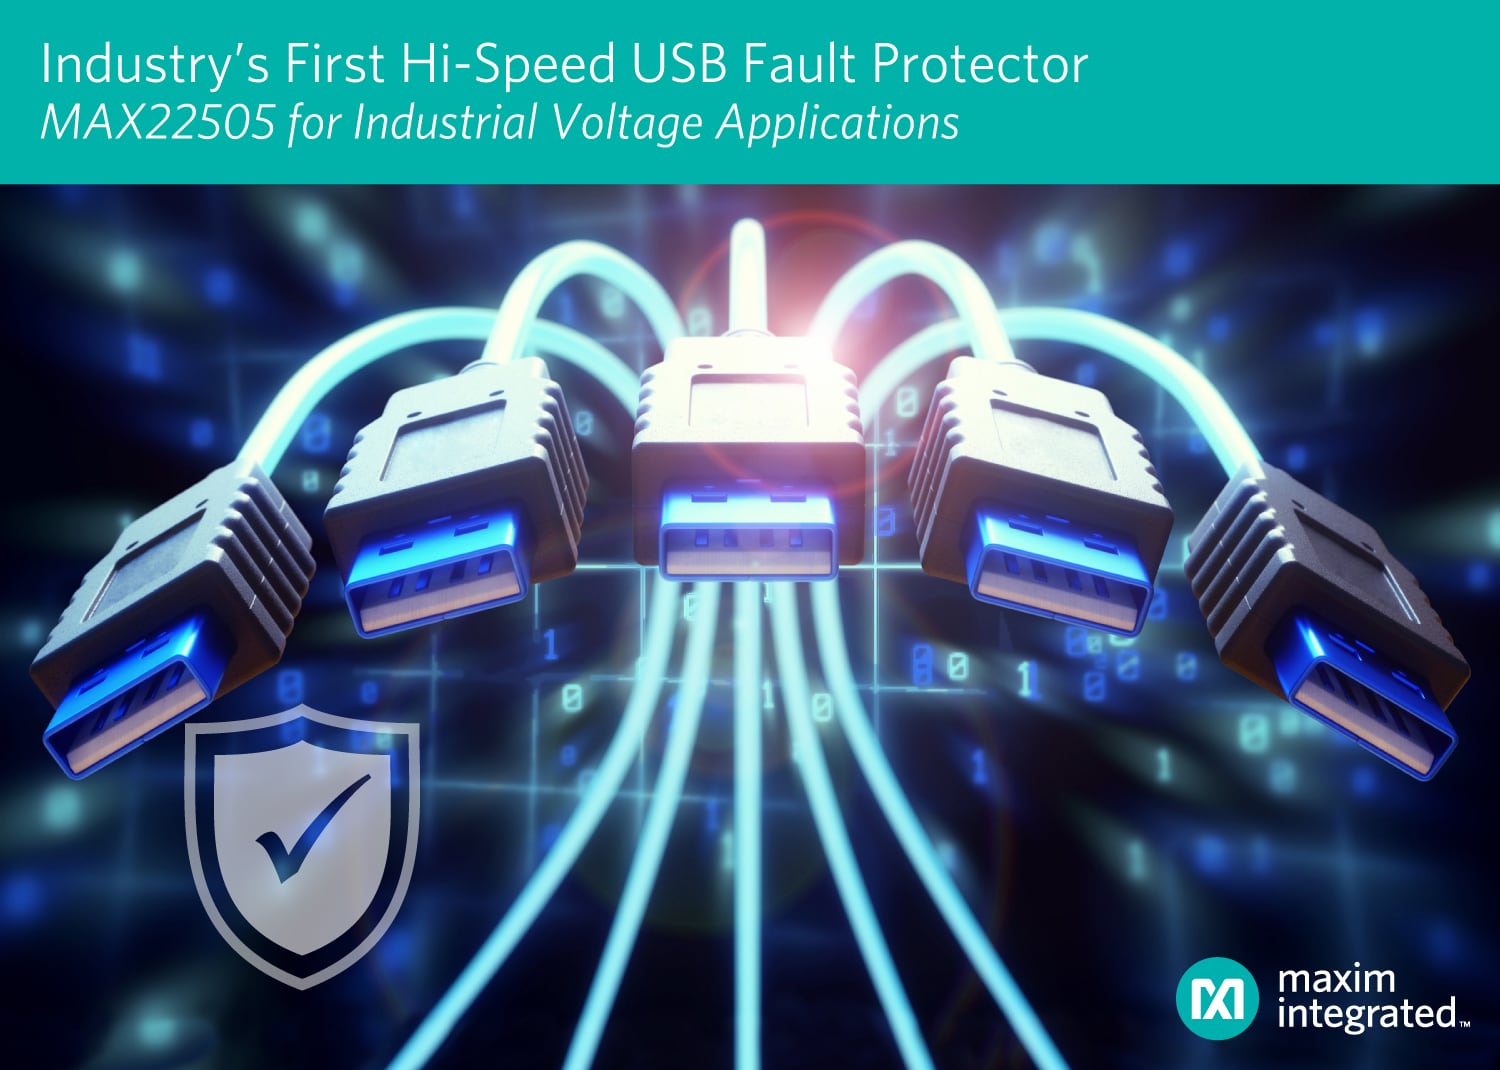 The Industry's First True Fault Protection Solution for High-Speed USB Ports and Industrial Voltage Applications